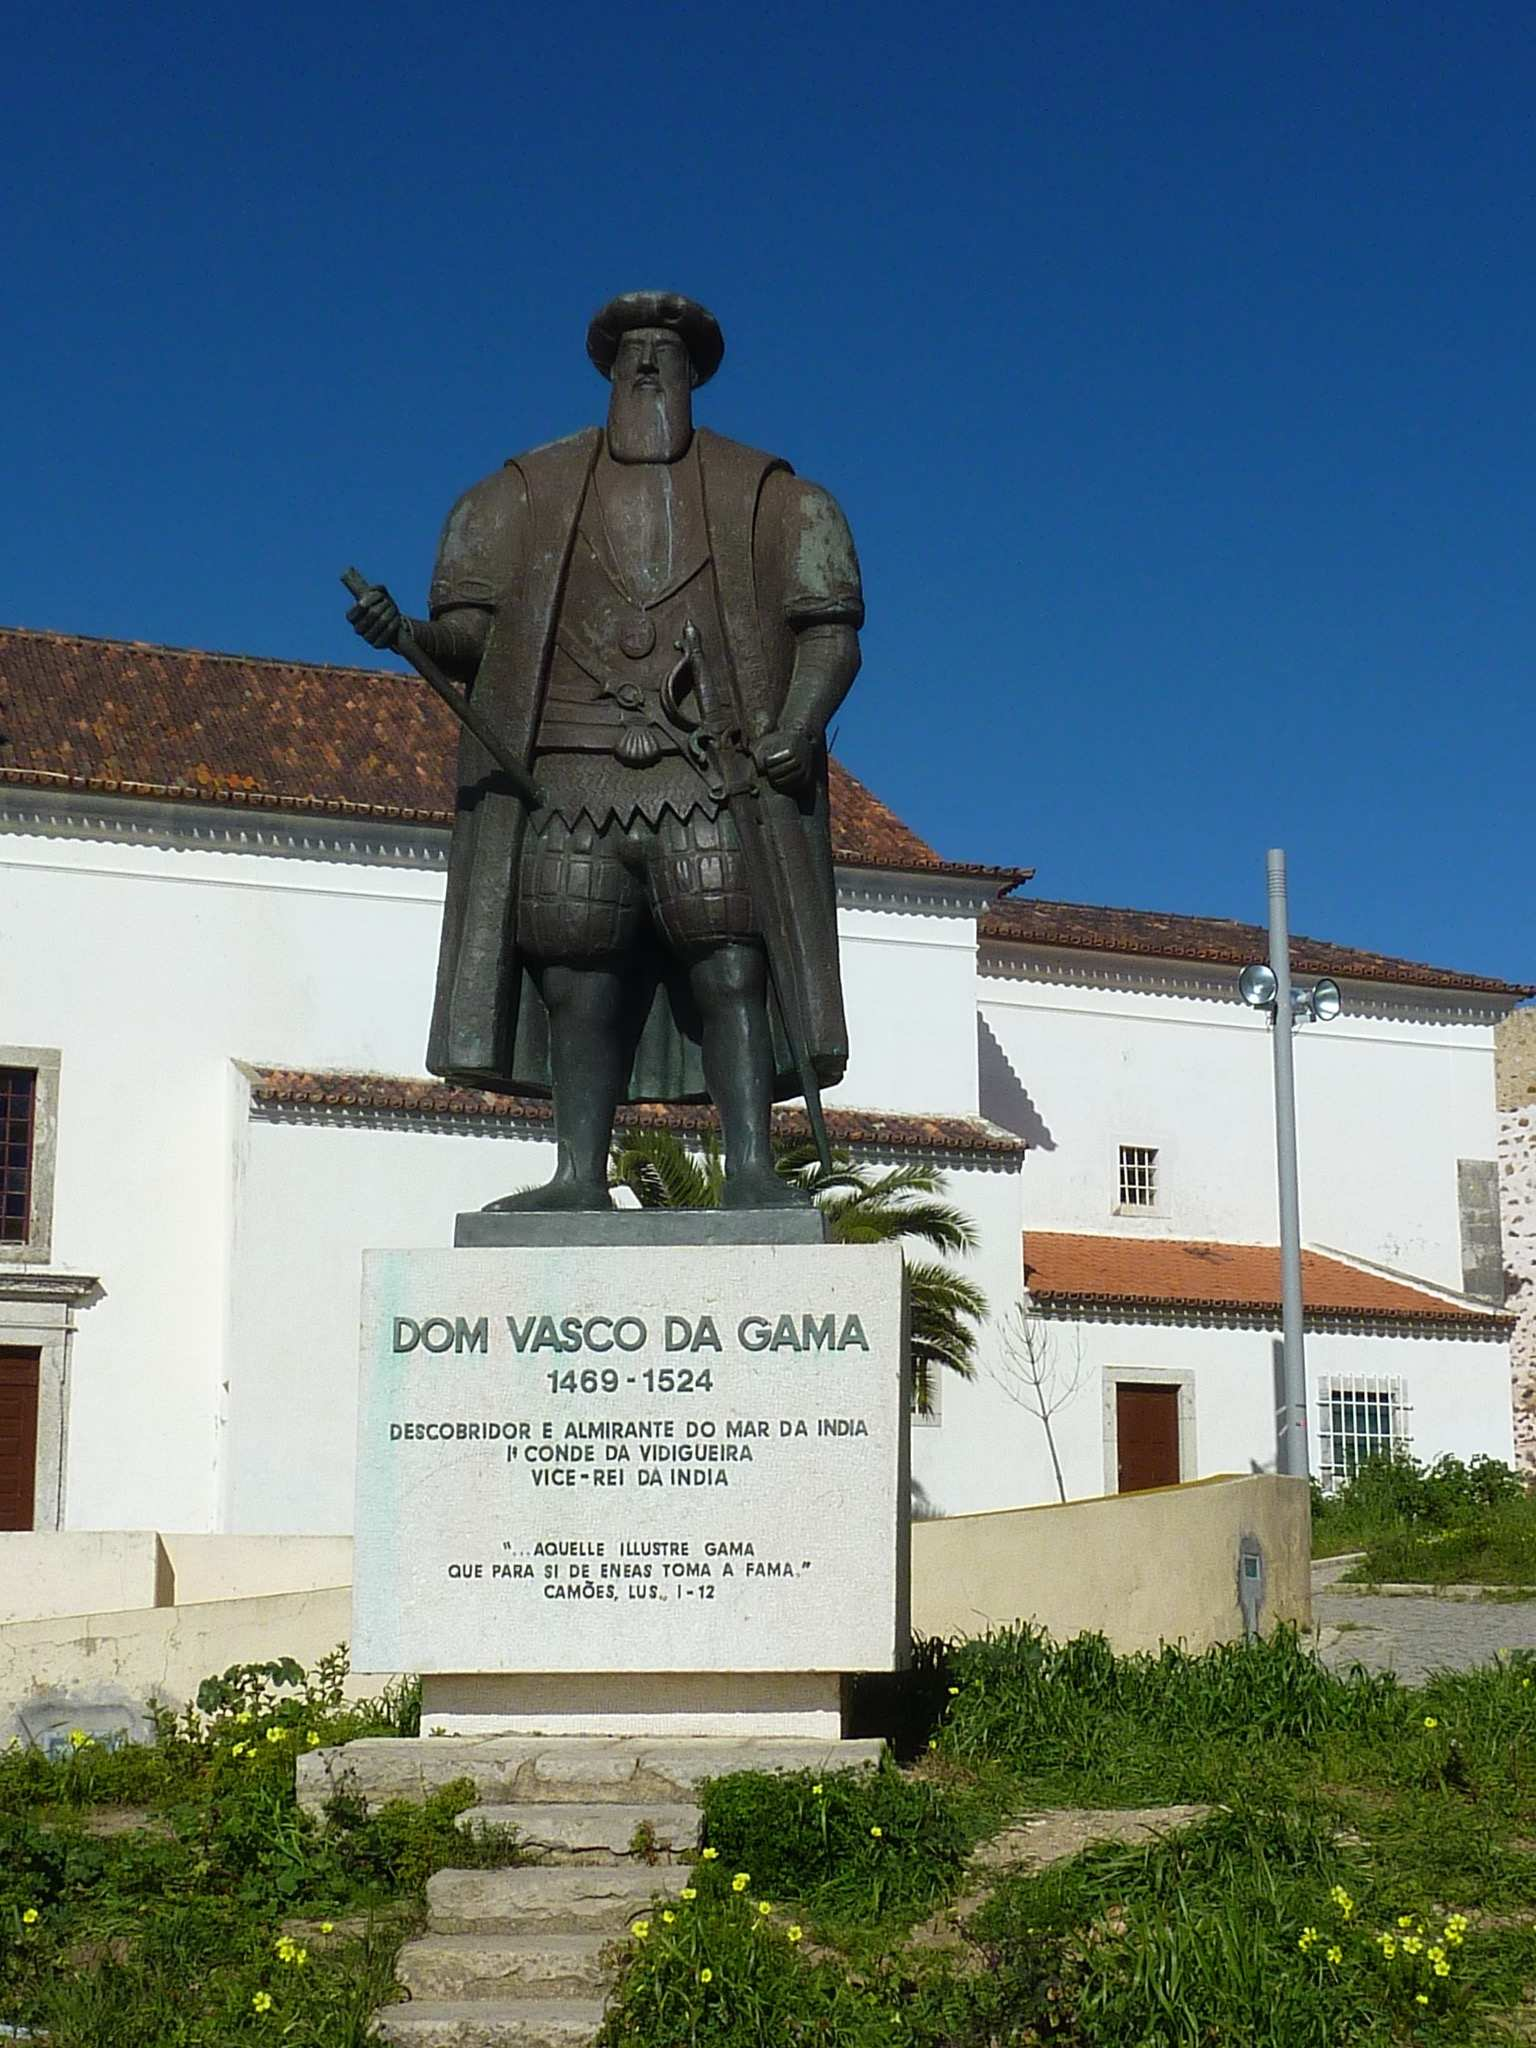 And Vasco Da Gama Vasco Da Gama Where Are You Now